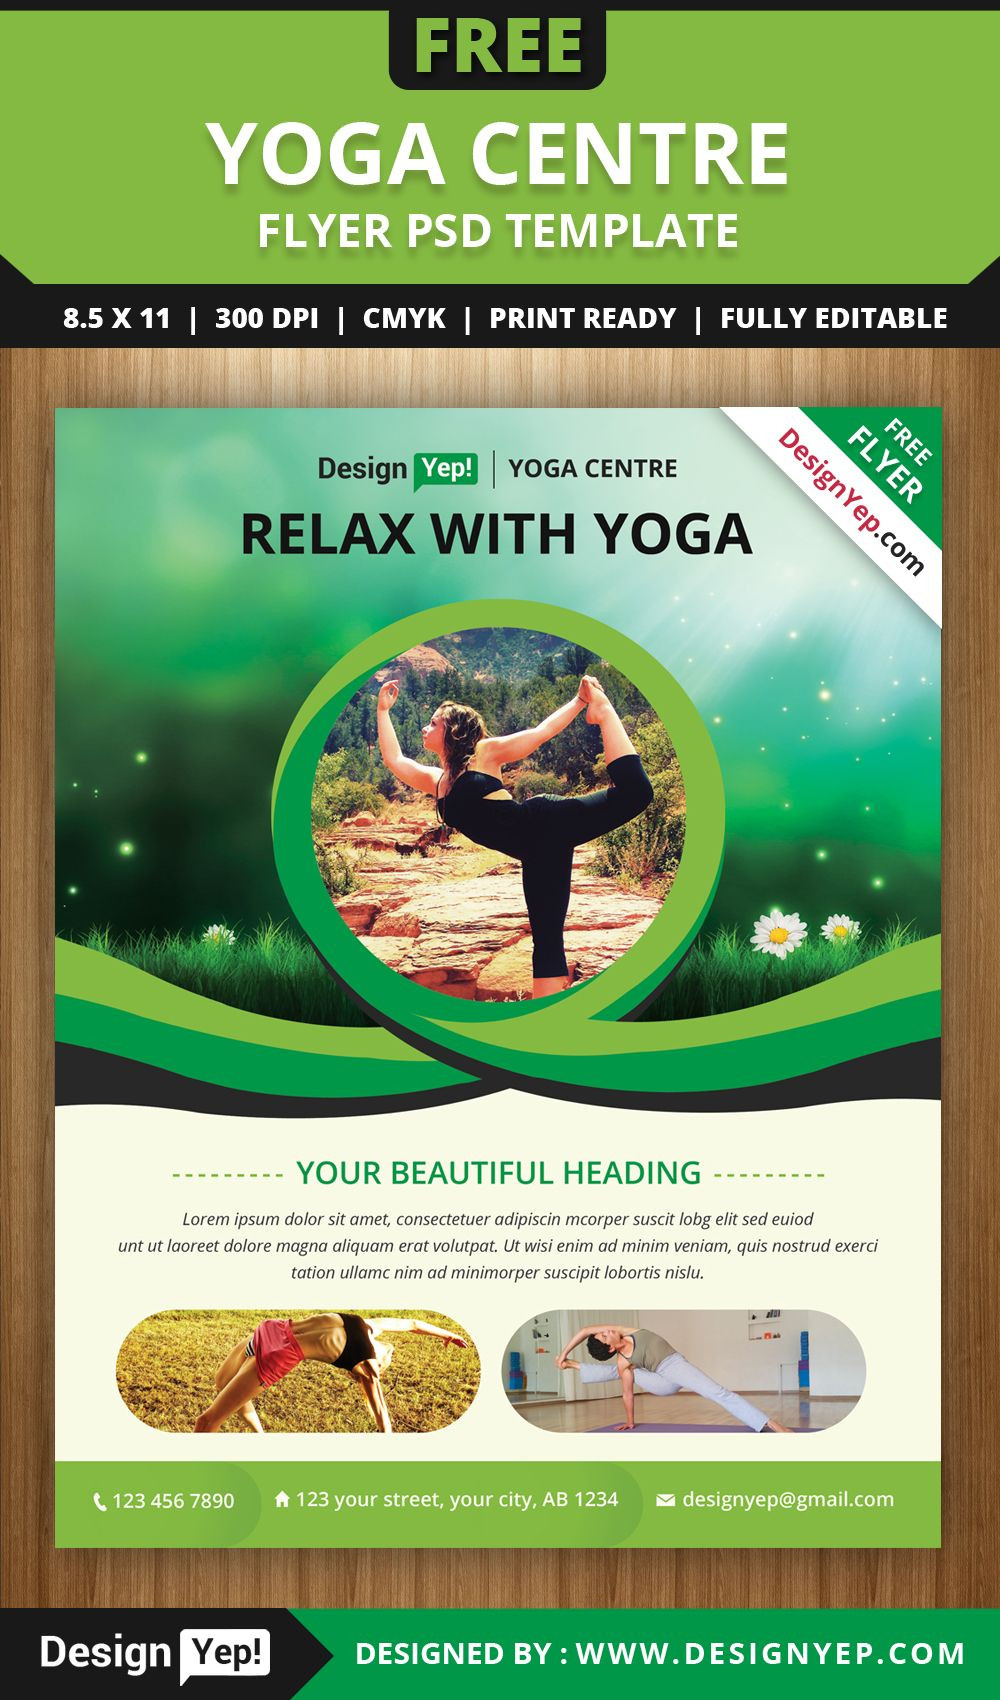 Free Yoga Flyer PSD Template for Download